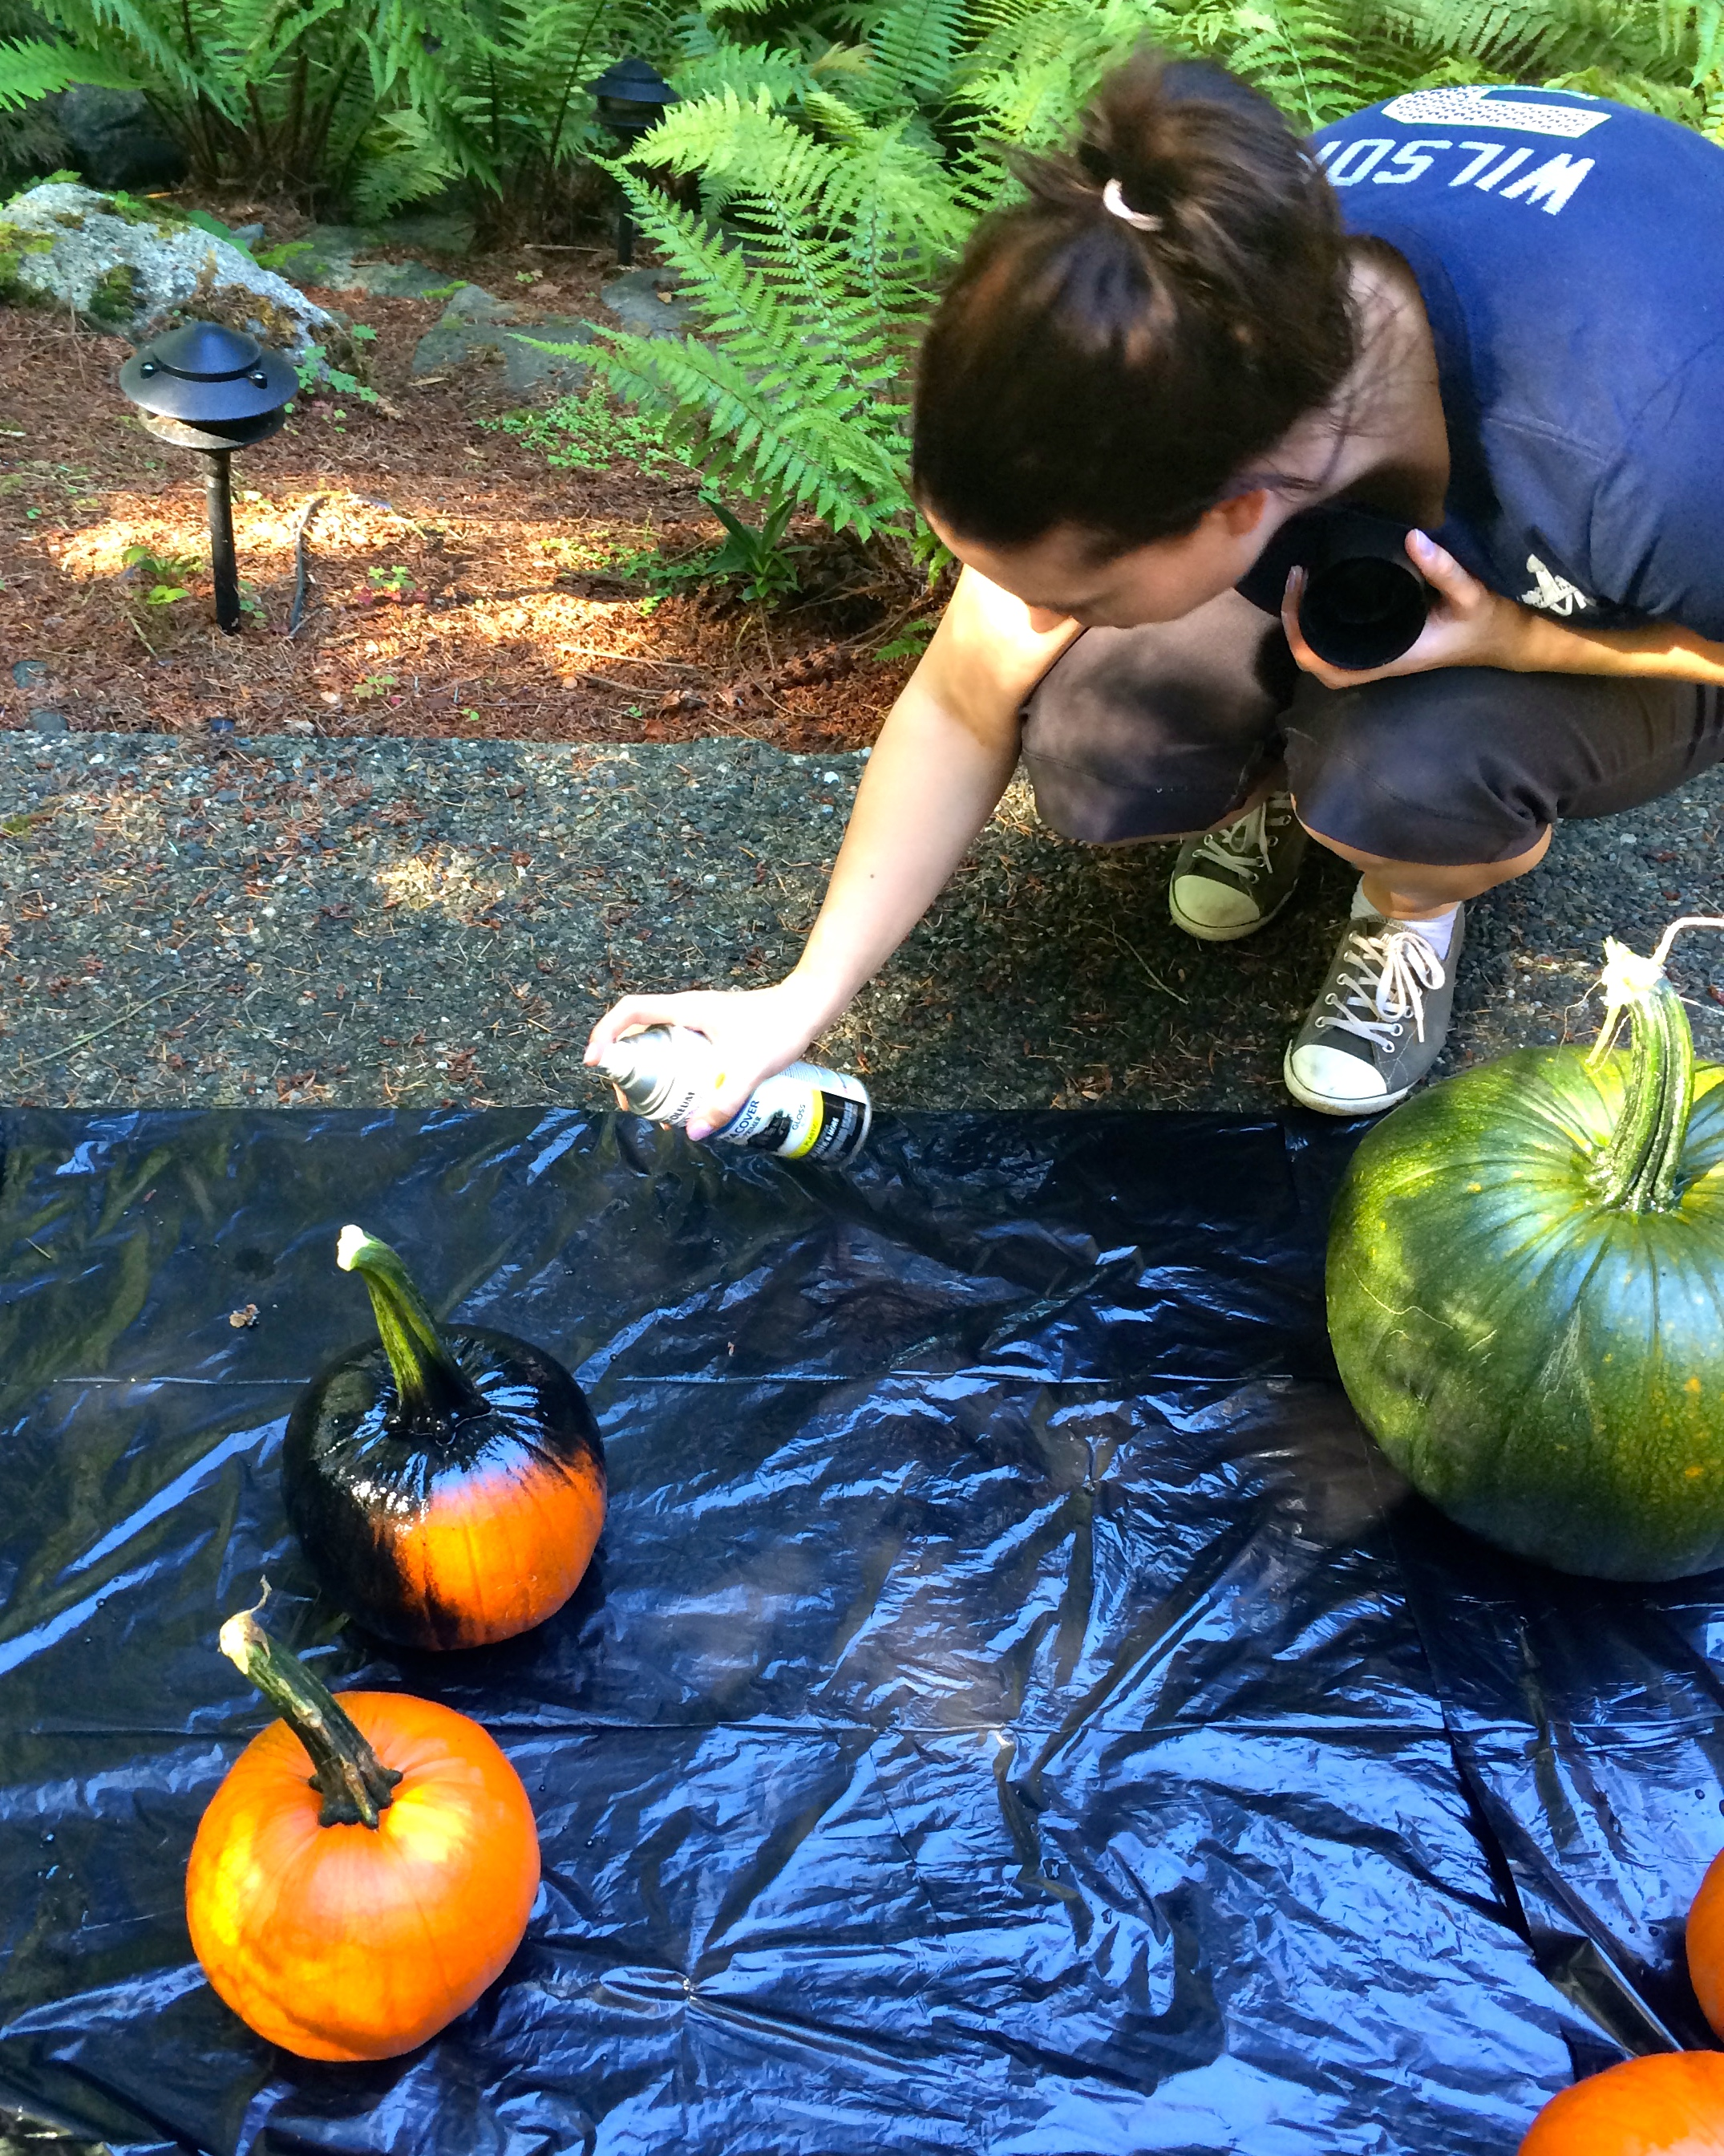 Spray painting a pumpkin